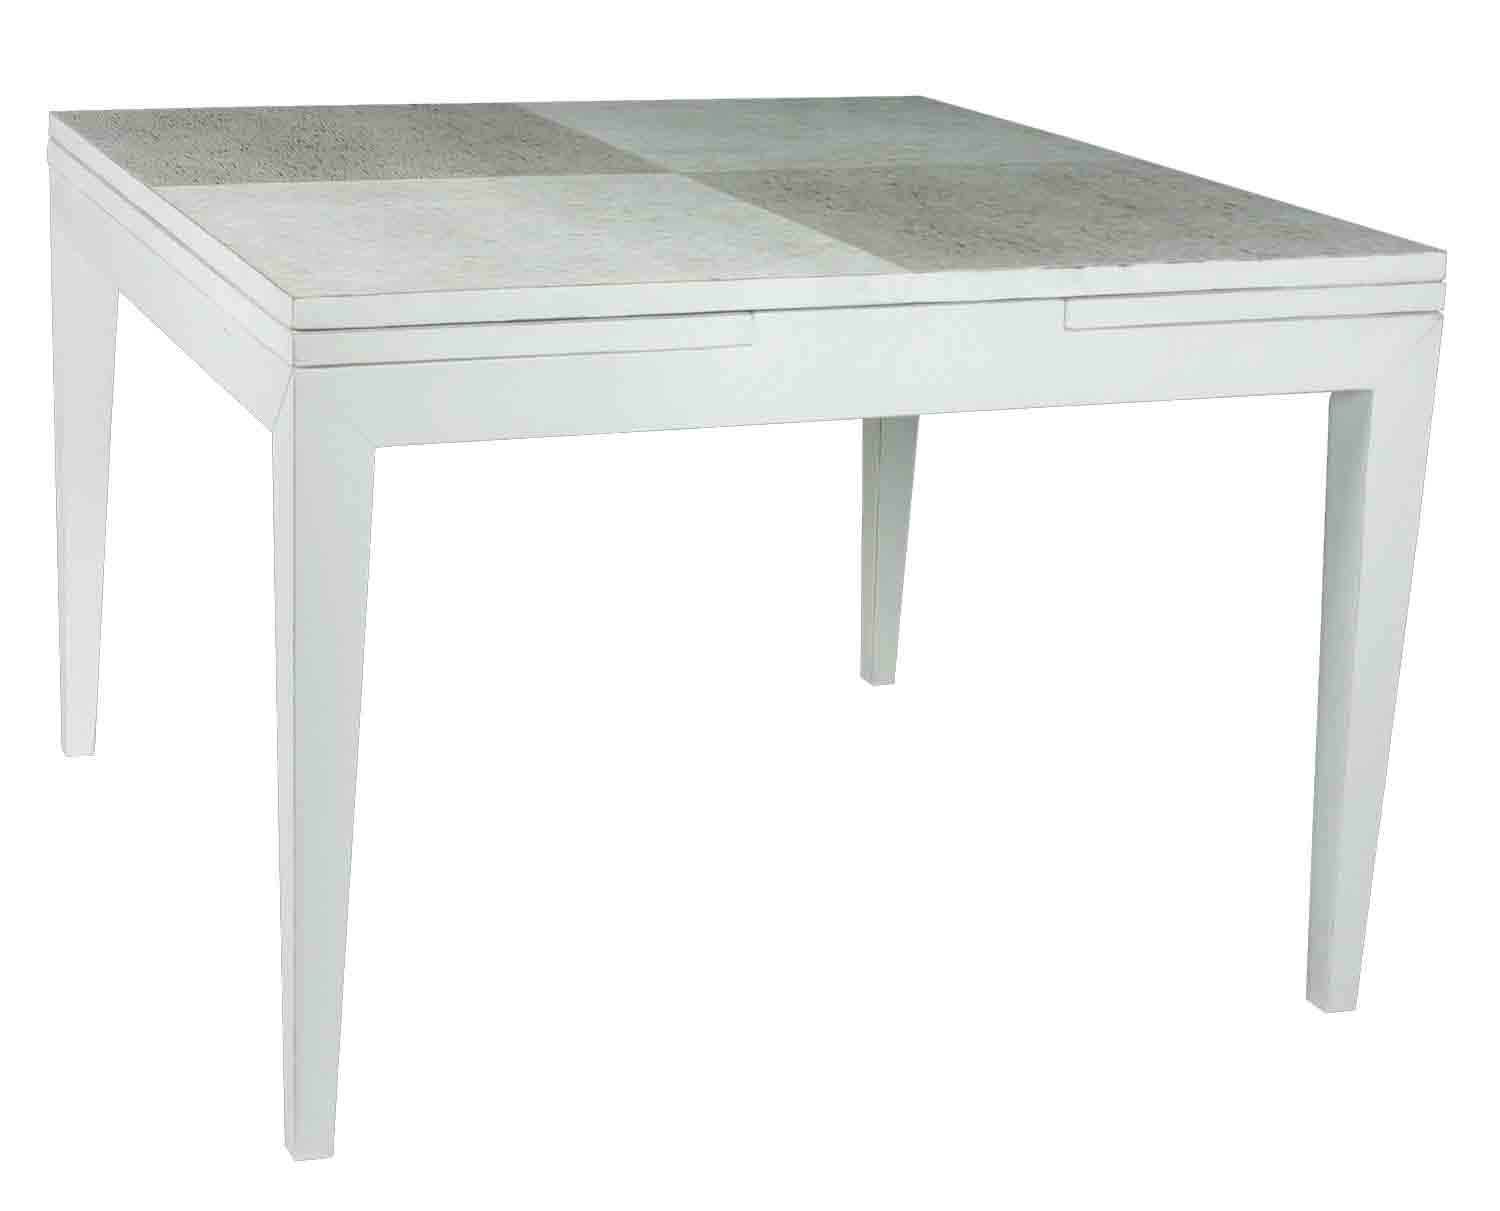 Tropical trading produits table a manger Table a manger carre extensible